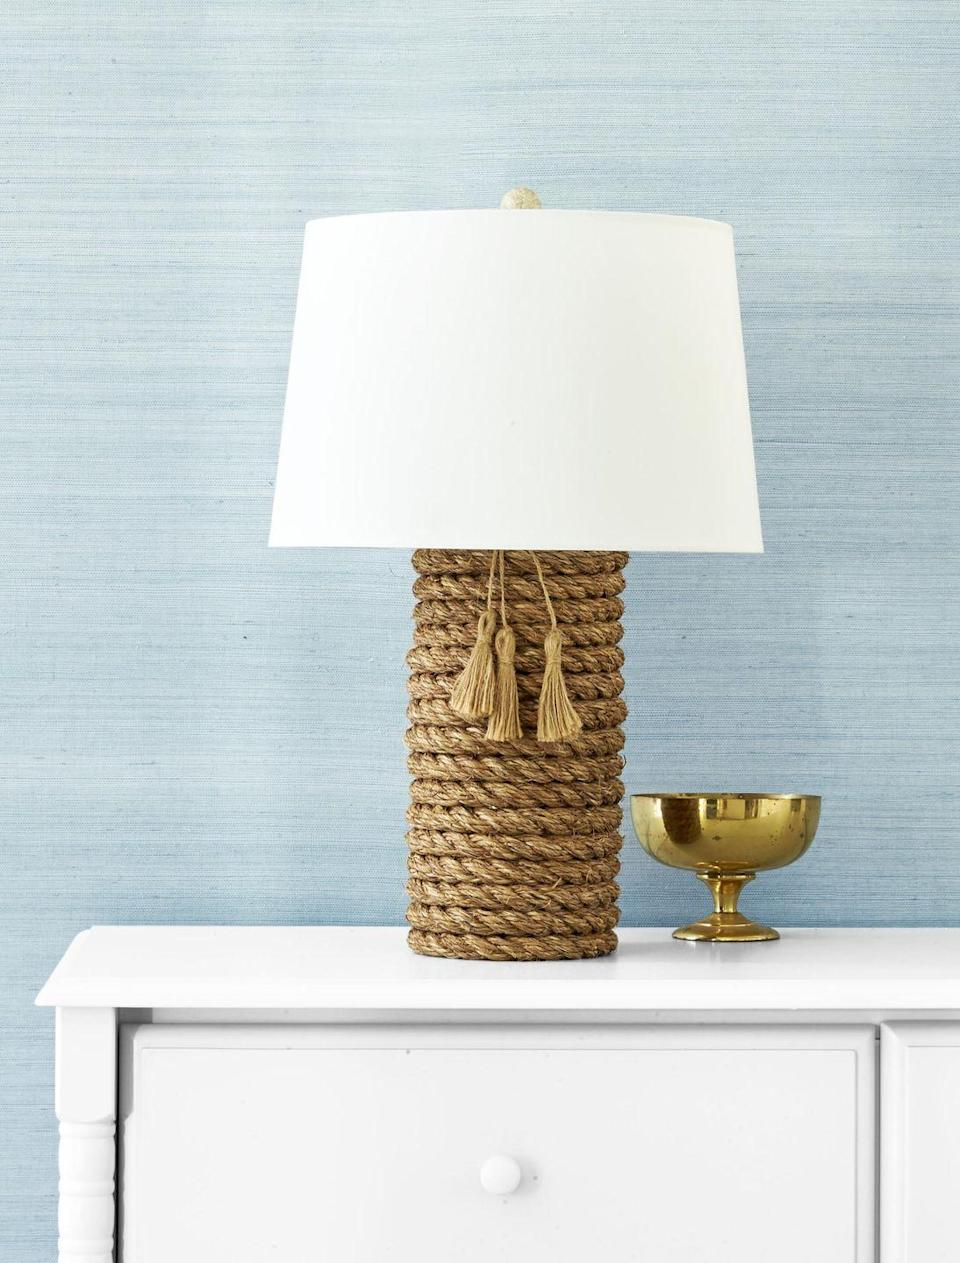 """<p>Have a lamp you are just tired of looking at? Try wrapping it with rope to give it a whole new, modern vibe.<strong><br></strong></p><p><strong>To make:</strong> Wrap a cylindrical lamp base with 3/4-inch-thick manila<br>rope, holding it in place with hot-glue. For added flair, hang burlap tassels <a href=""""https://www.amazon.com/Tegg-Natural-Embellishing-Wedding-Decoration/dp/B08GCB6Q66/ref=sr_1_2"""" rel=""""nofollow noopener"""" target=""""_blank"""" data-ylk=""""slk:($9; amazon.com"""" class=""""link rapid-noclick-resp"""">($9; <em>amazon.com</em></a>) from the lamp's neck.<br></p>"""